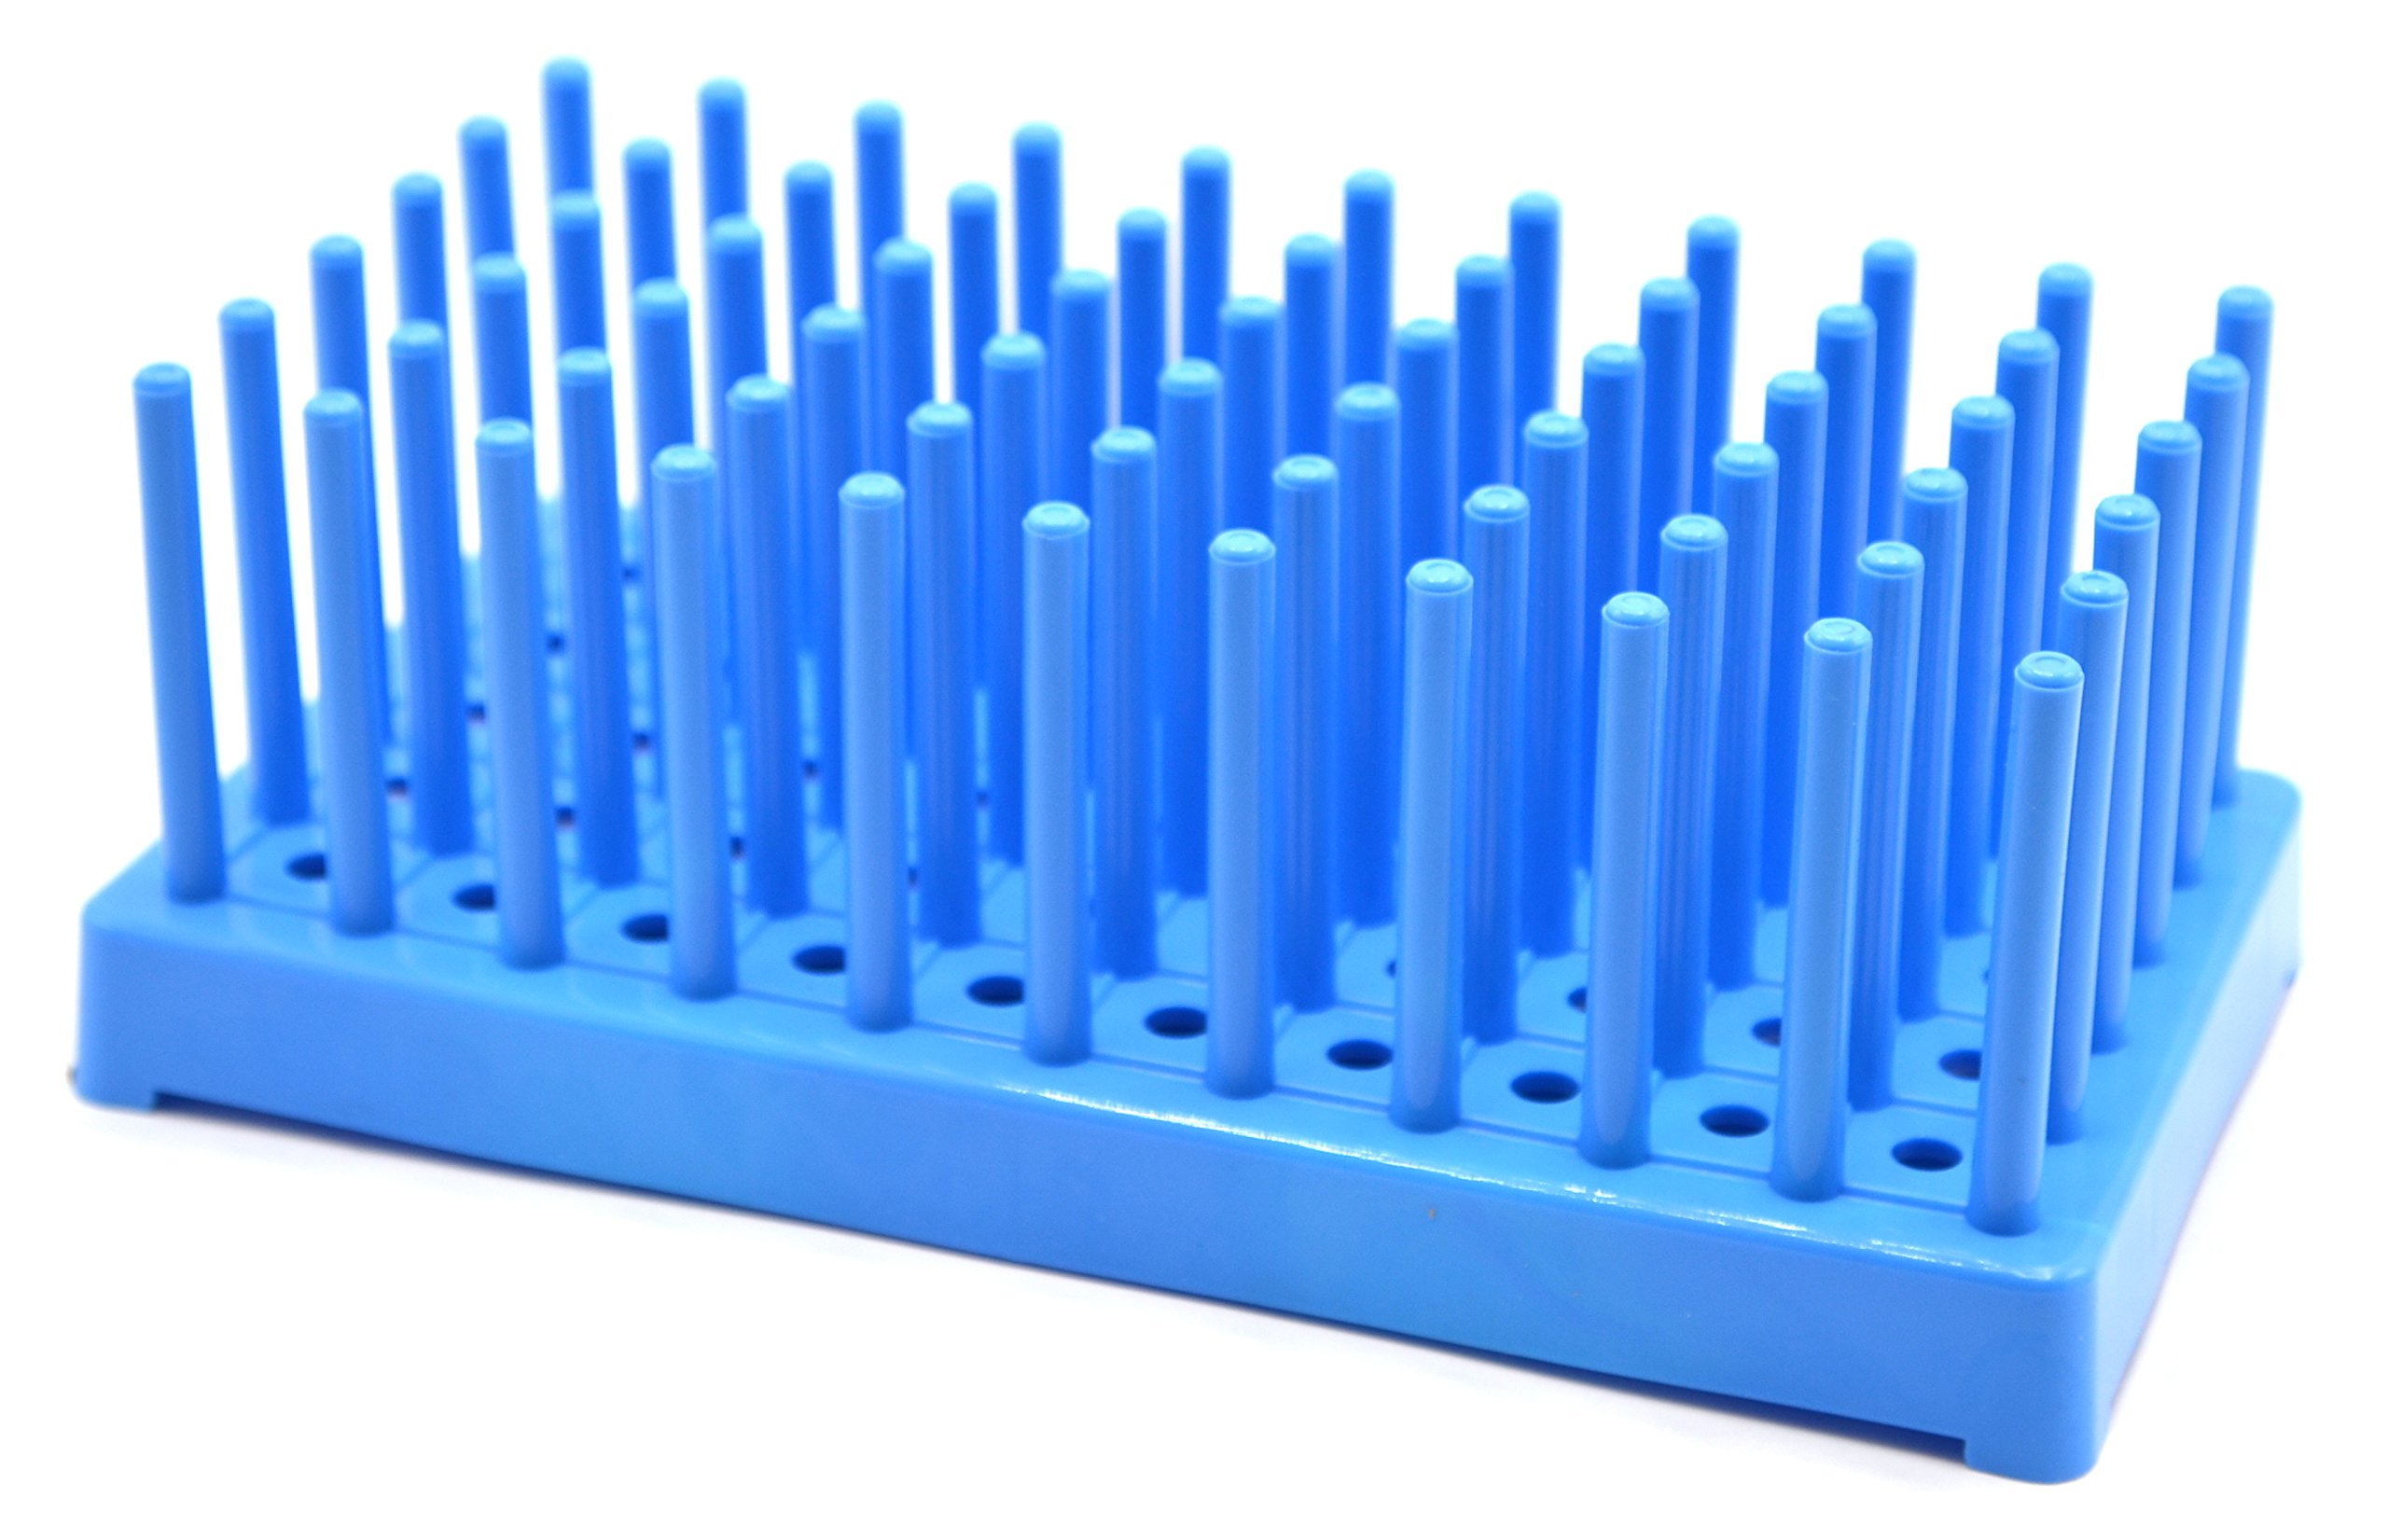 (Pack of 2) Blue Plastic Test Tube Peg Drying Rack Holds 50 16mm Test Tubes - Eisco Labs by EISCO